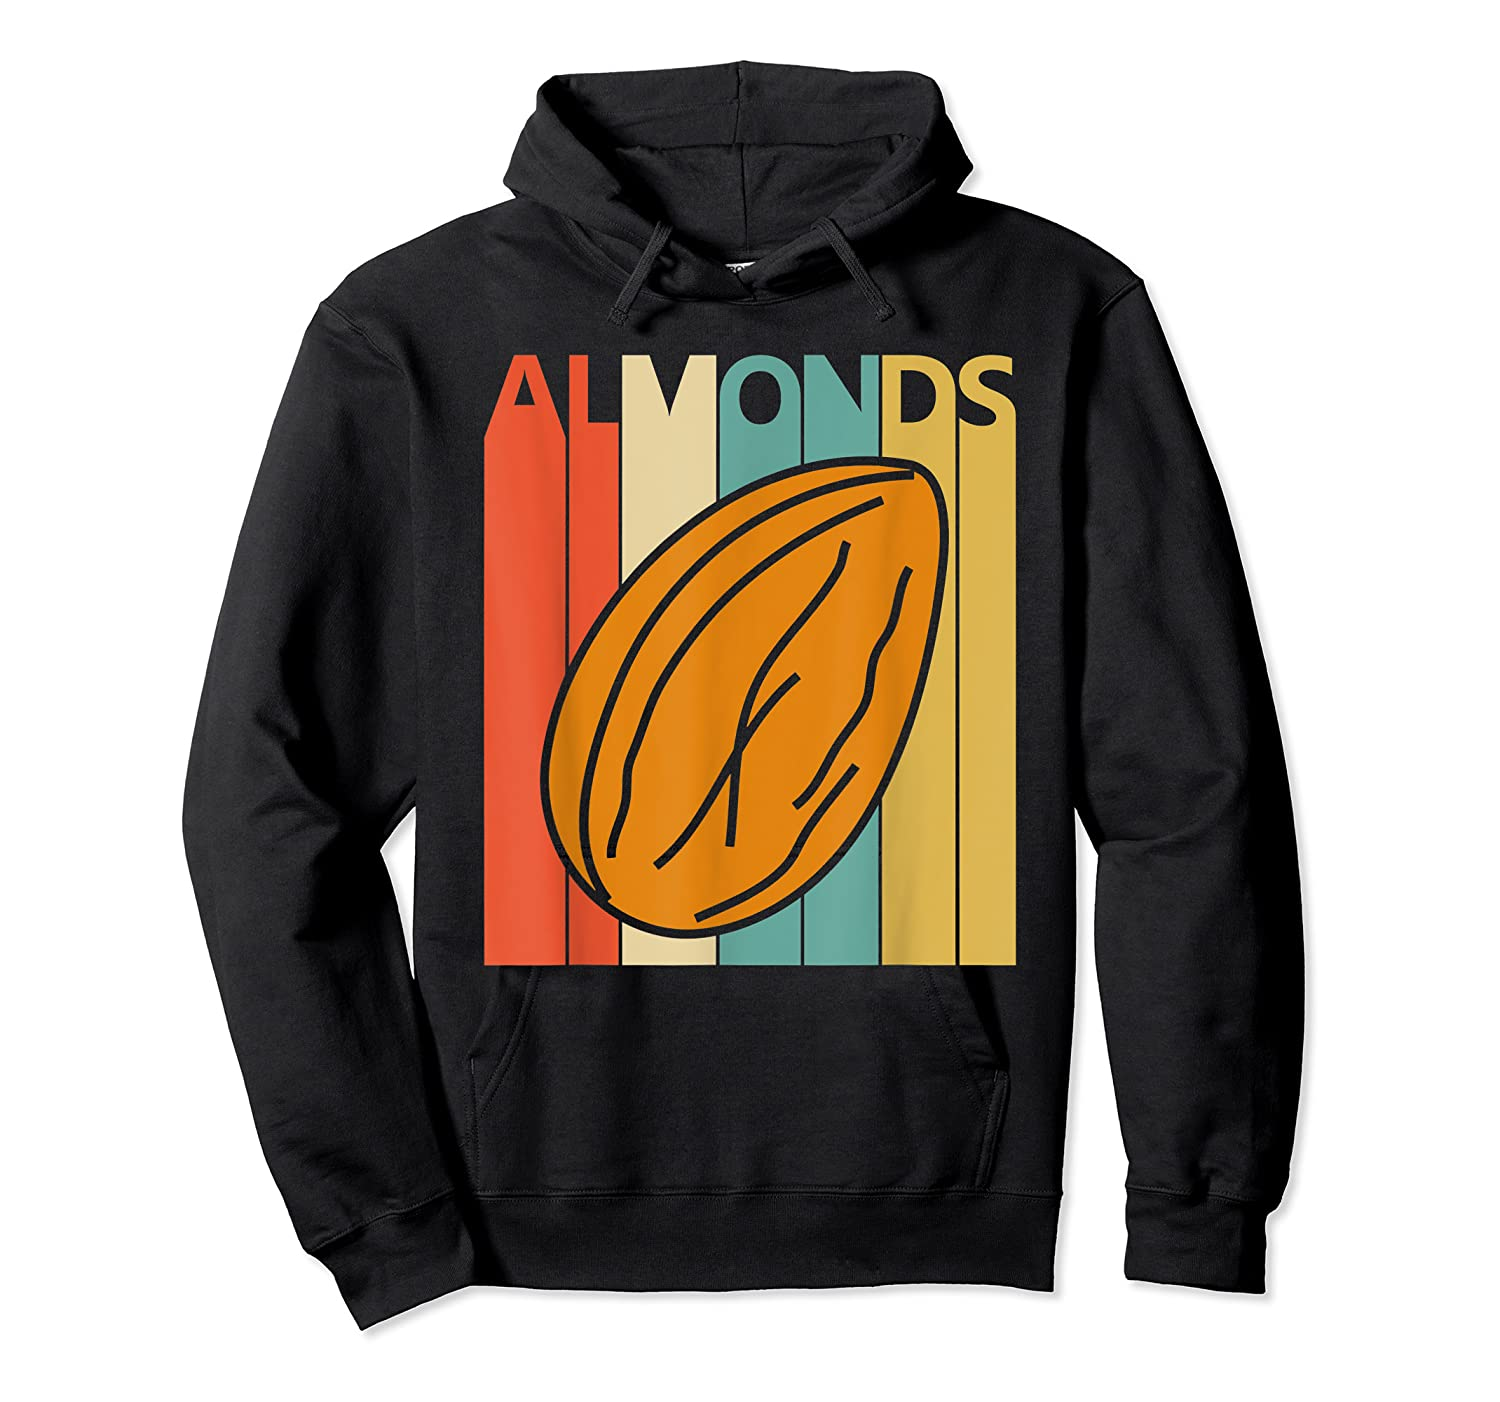 Vintage Retro Almonds Almond Nuts Gift Shirts Unisex Pullover Hoodie